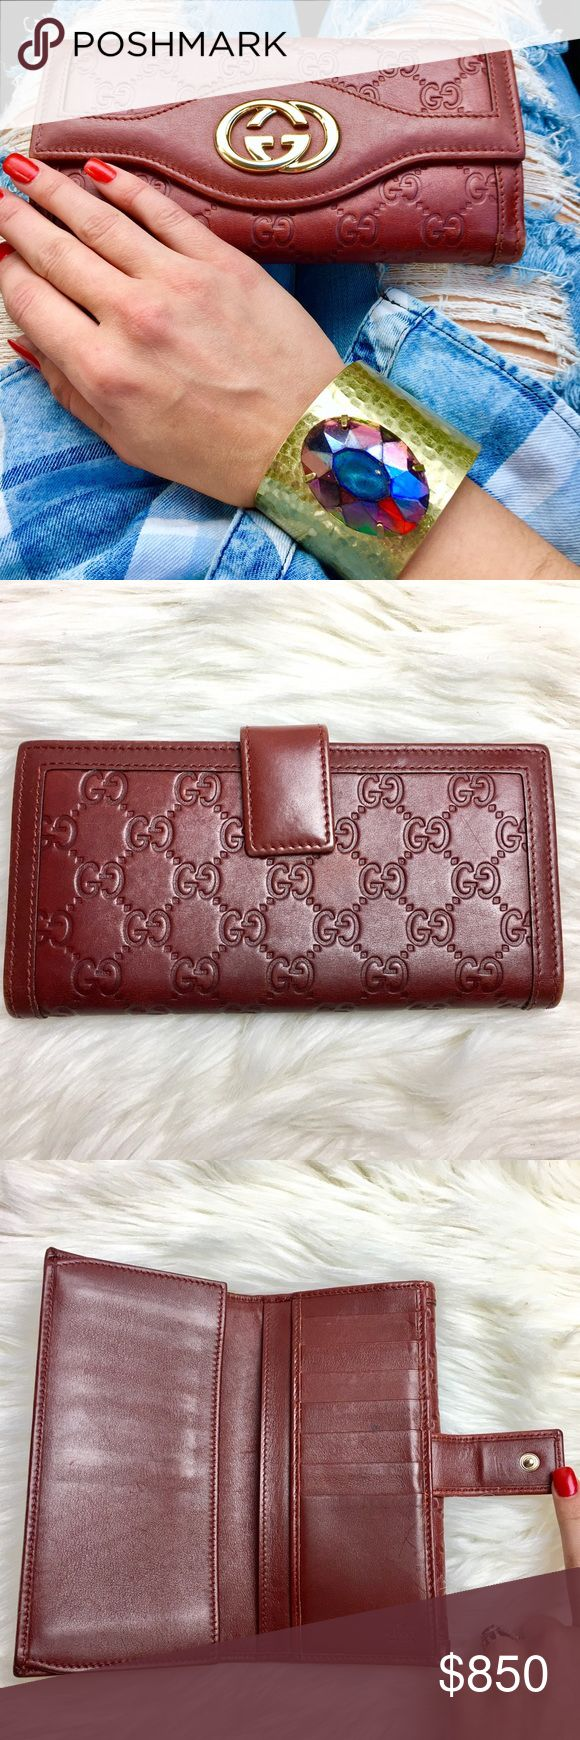 GUCCI Guccissima Embossed Burgundy Wallet Authentic guaranteed! Datecode is stamped inside (can add a pic) Super Rare Wallet in stunning burgundy color. This wallet feature a polished Gucci logo hardware @ embossed monogram. Lined interior with 12 card slots, 2 cash pockets, and a zip compartment.  Very good pre-owned condition with some minor rubbing on the corners and small spot on one of the credit card slots inside. Overall looks amazing. Great quality and will last for years! ❤ Follow…